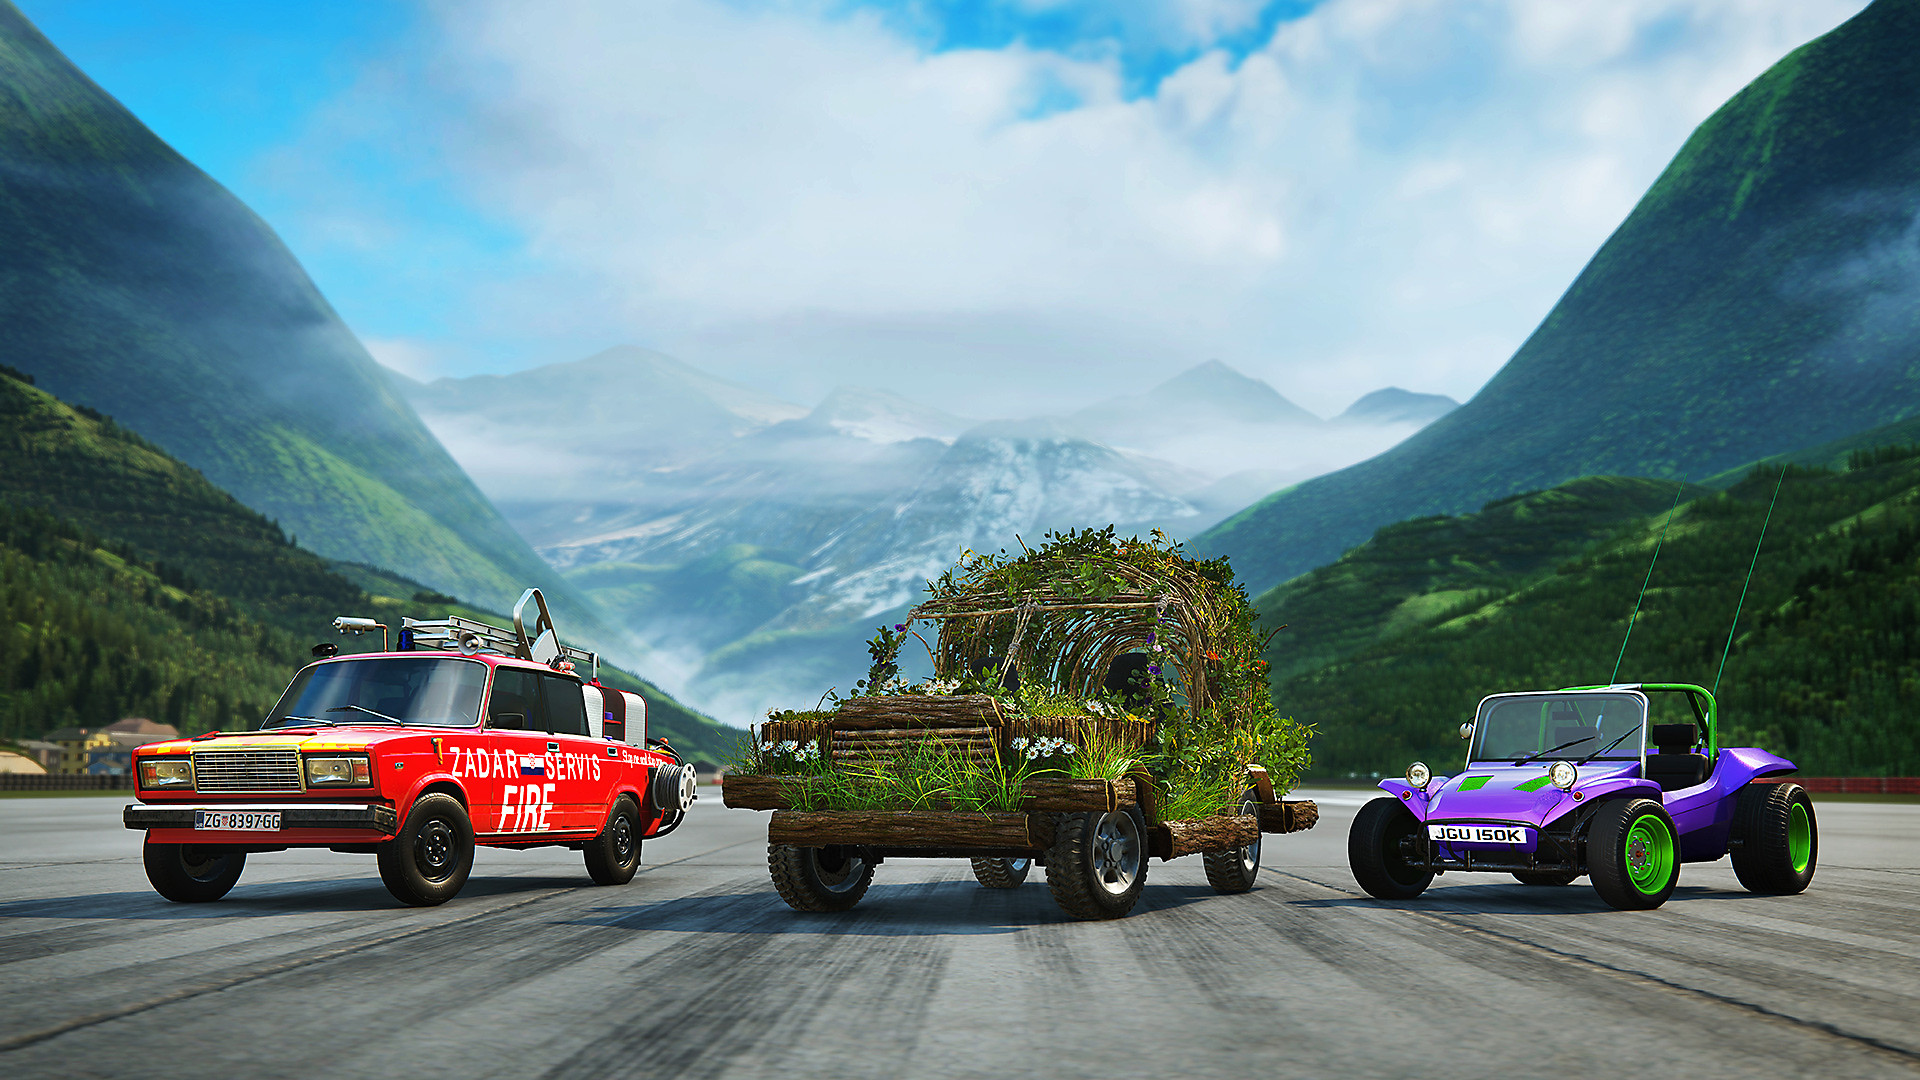 Three cars lined up on a road: a fire department car, a car made of plants, and a purple vintage racing car